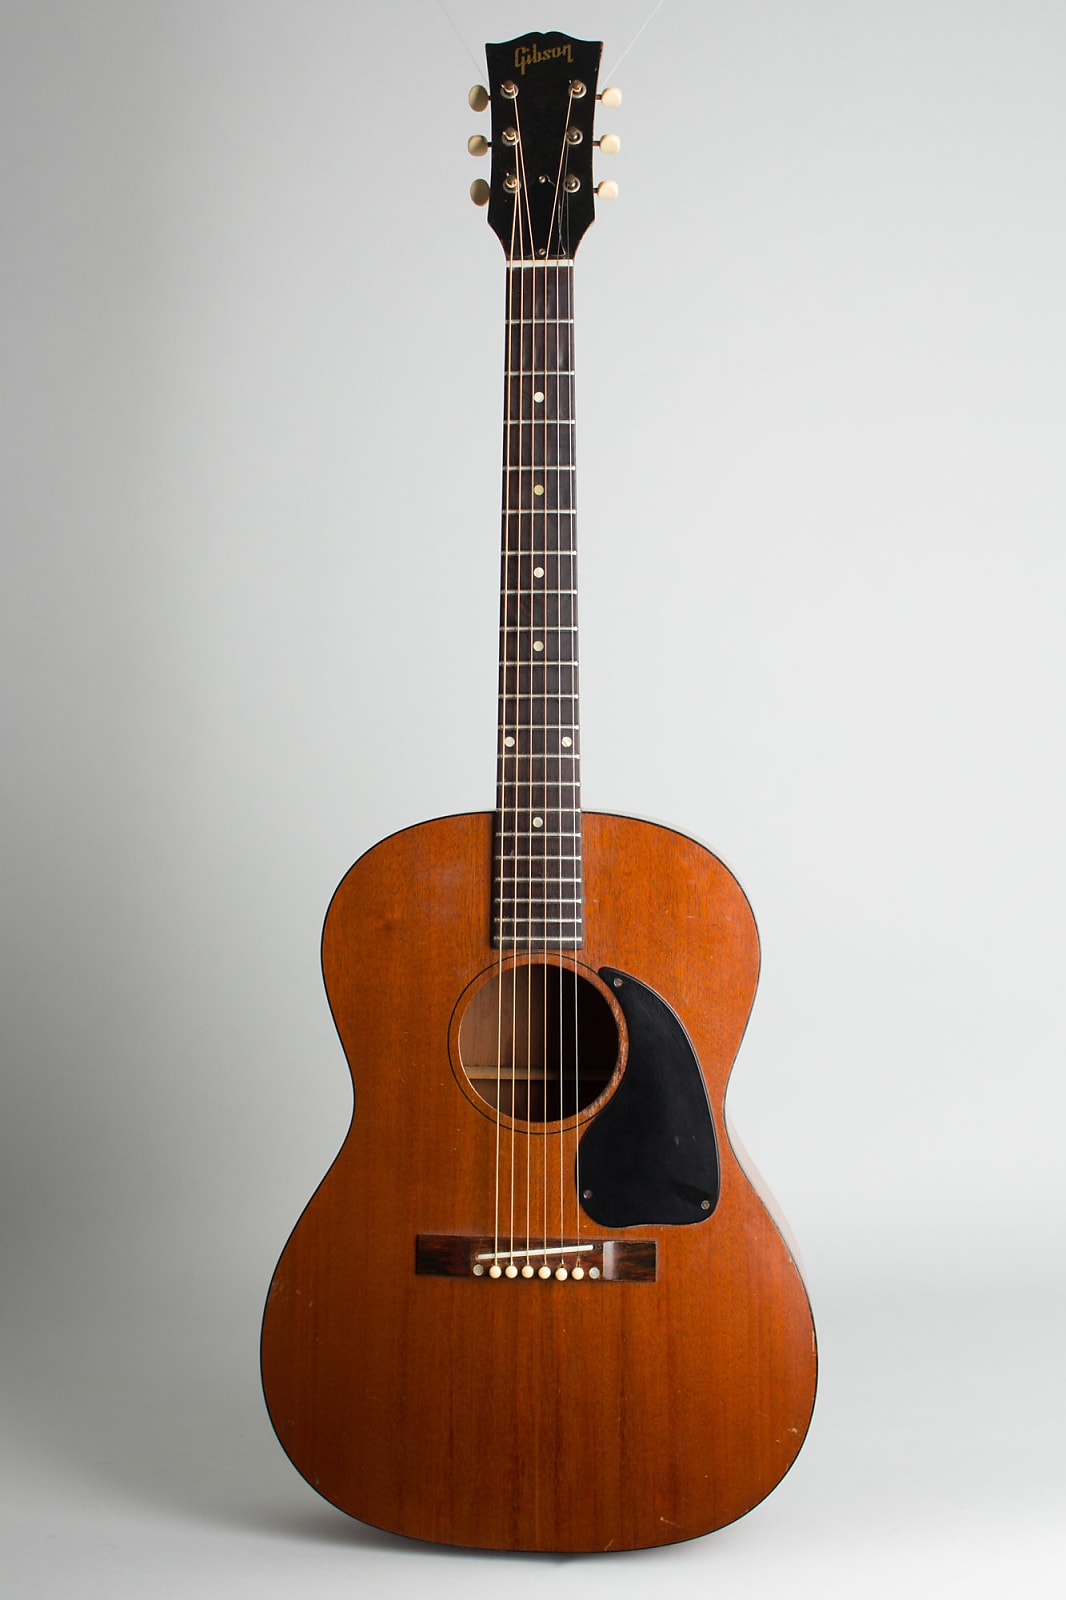 Gibson  LG-0 Flat Top Acoustic Guitar (1962), ser. #52509, black hard shell case.